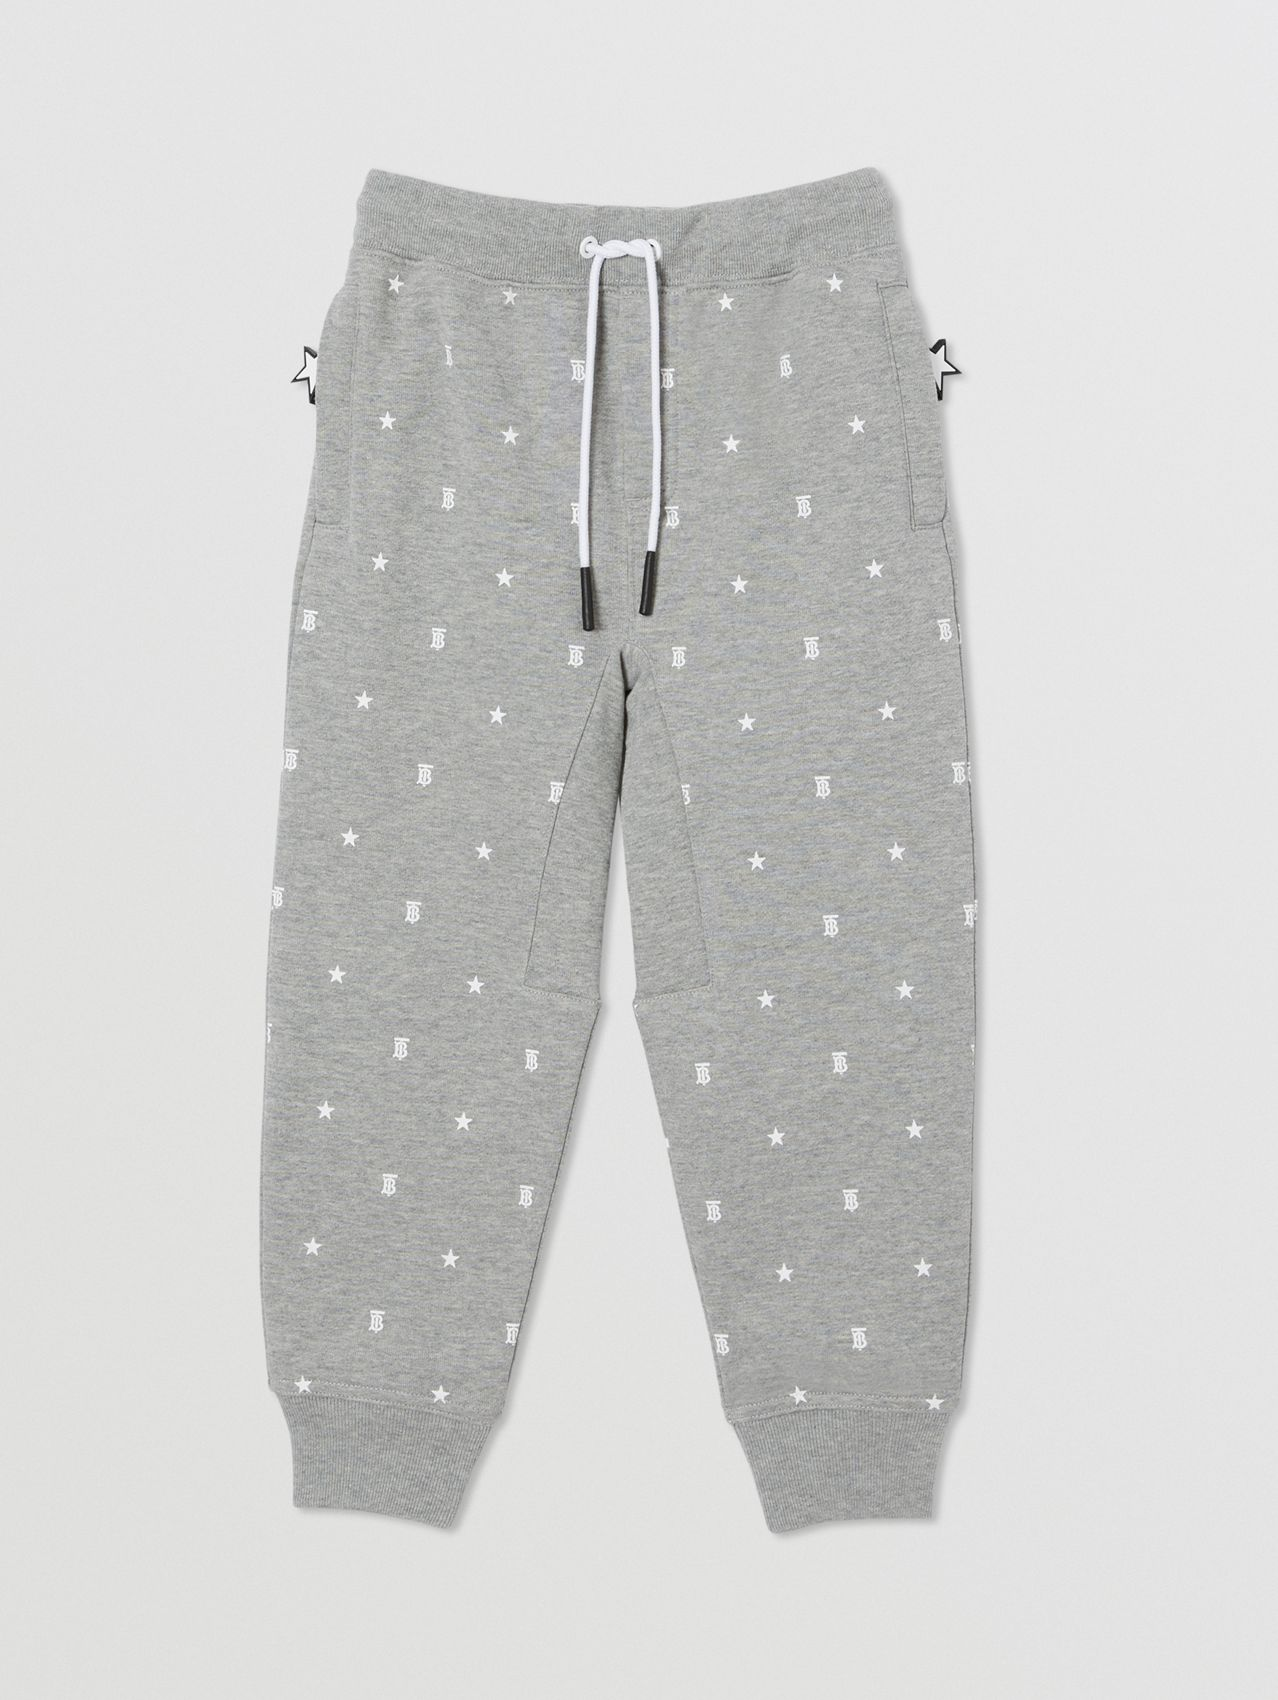 Star and Monogram Print Cotton Jogging Pants in Grey